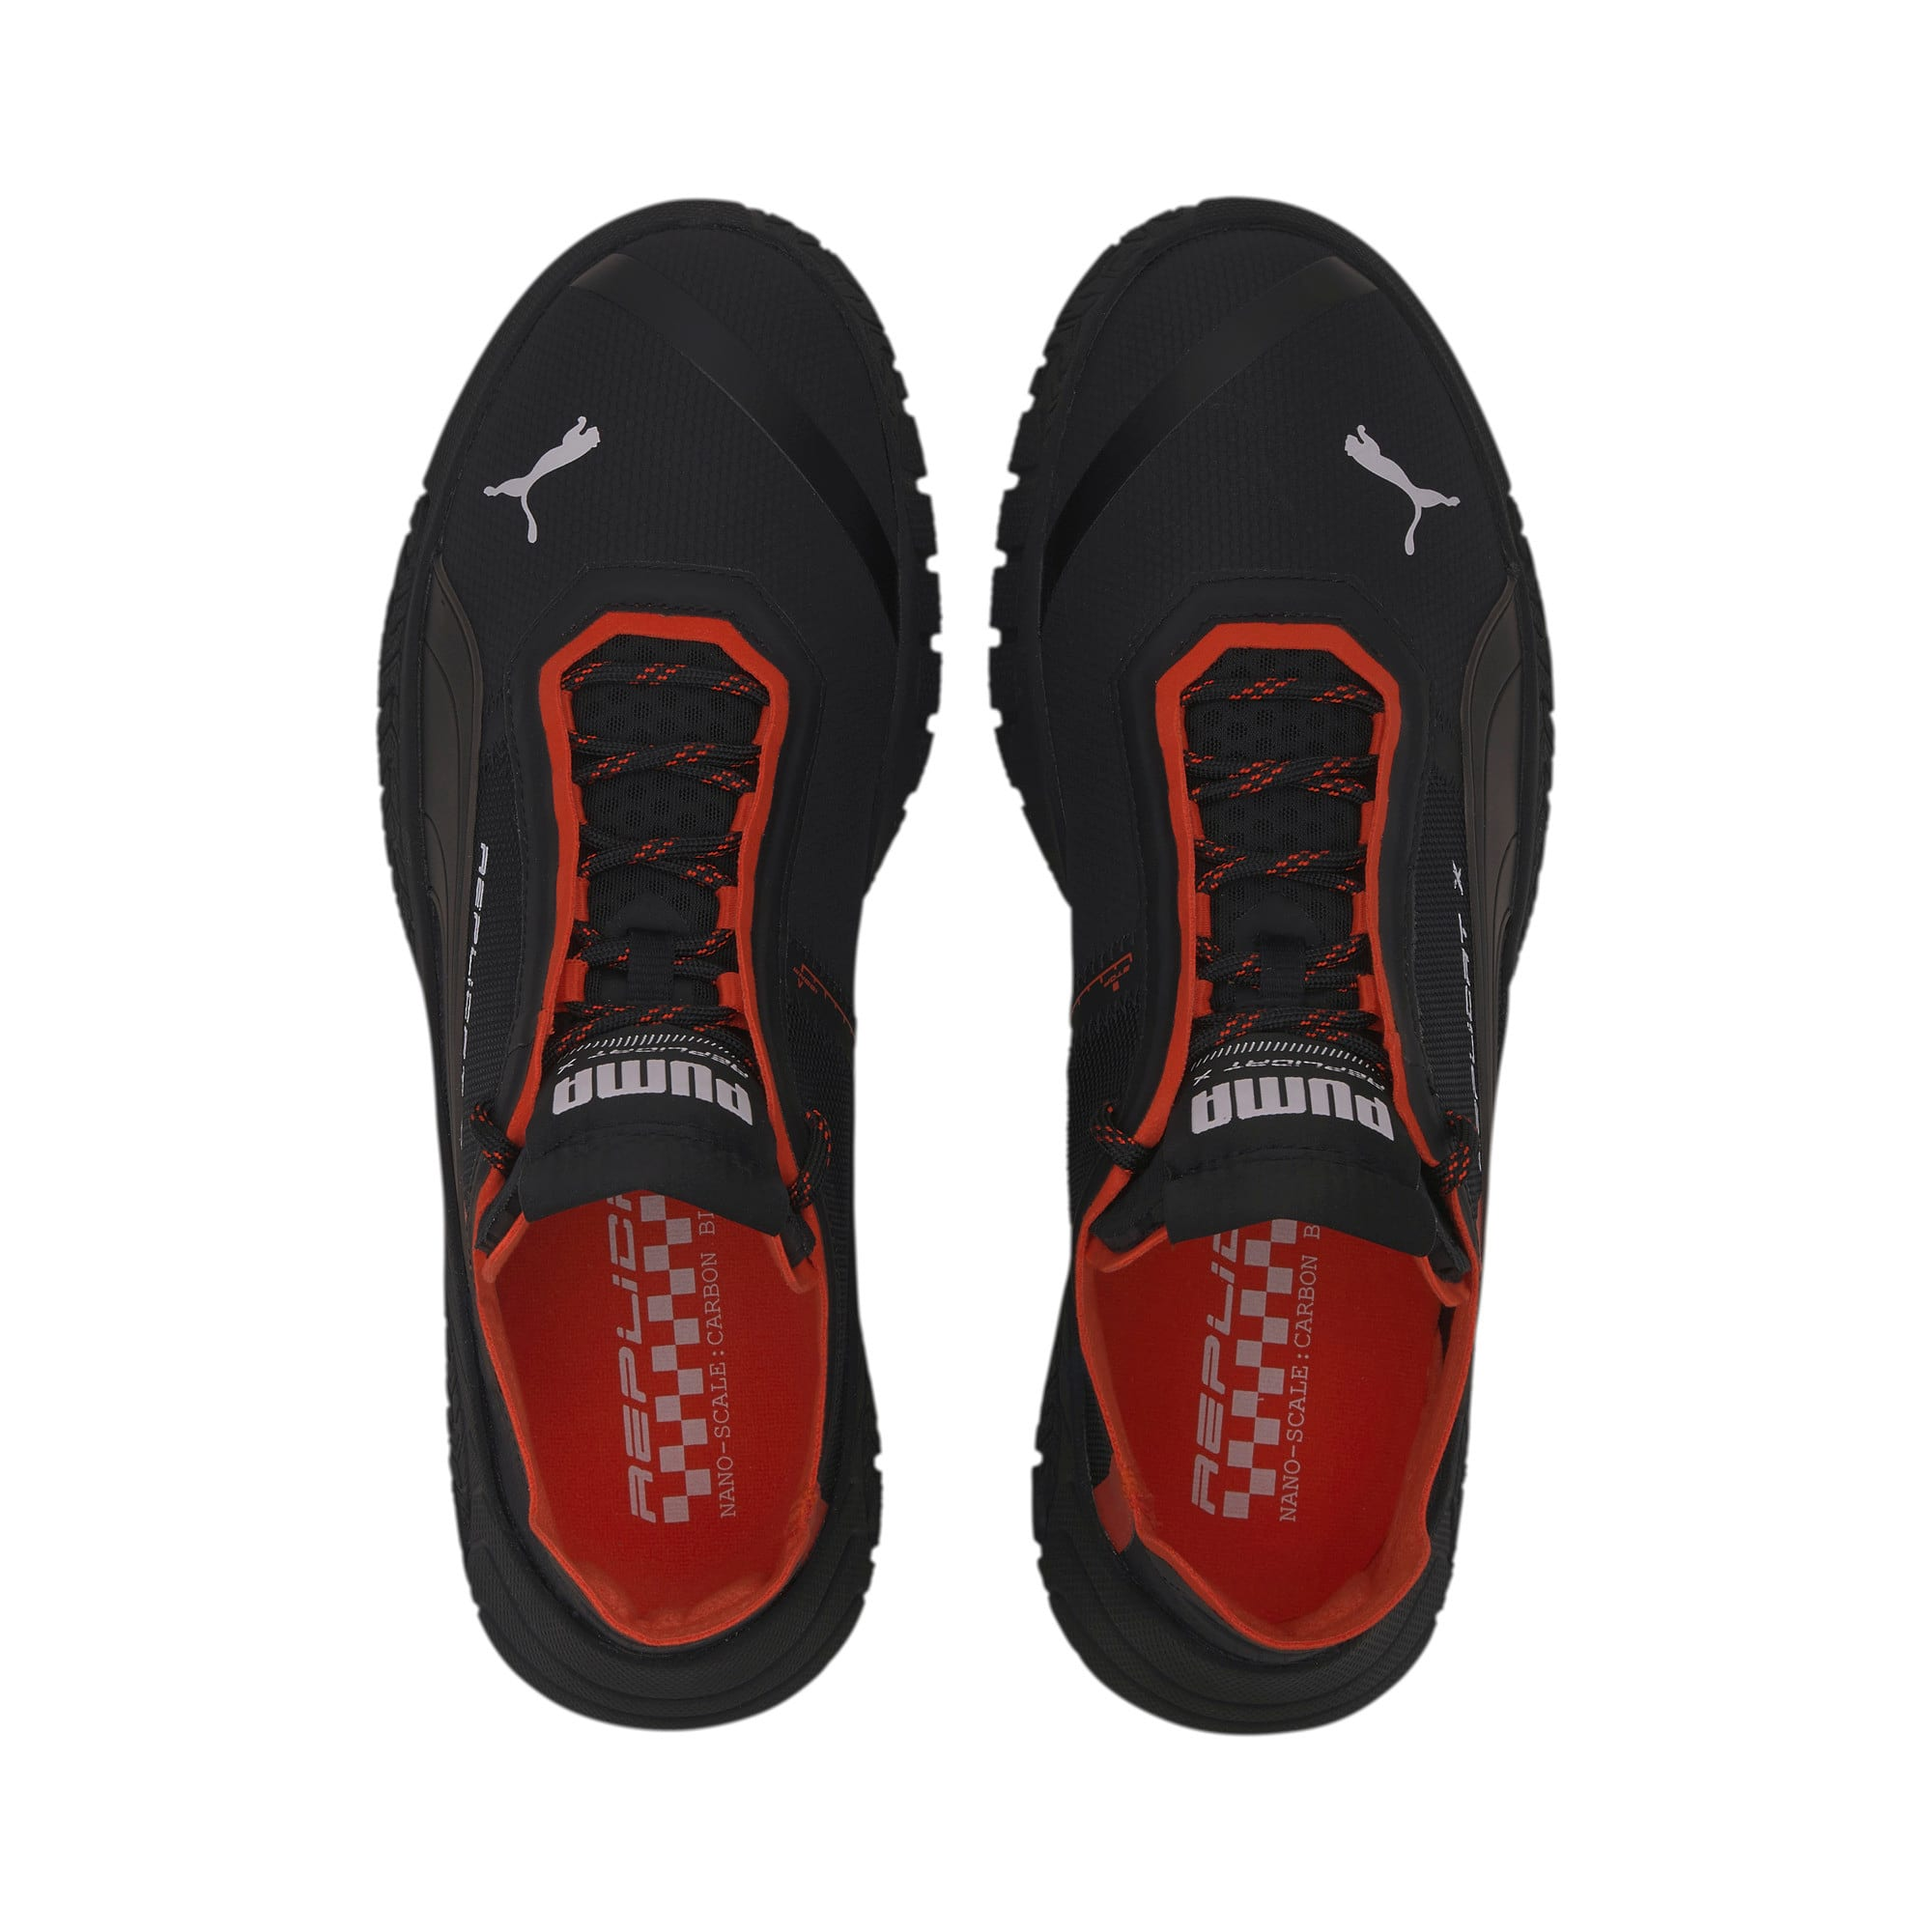 Thumbnail 6 of Replicat-X Circuit Trainers, Puma Black-Puma Red, medium